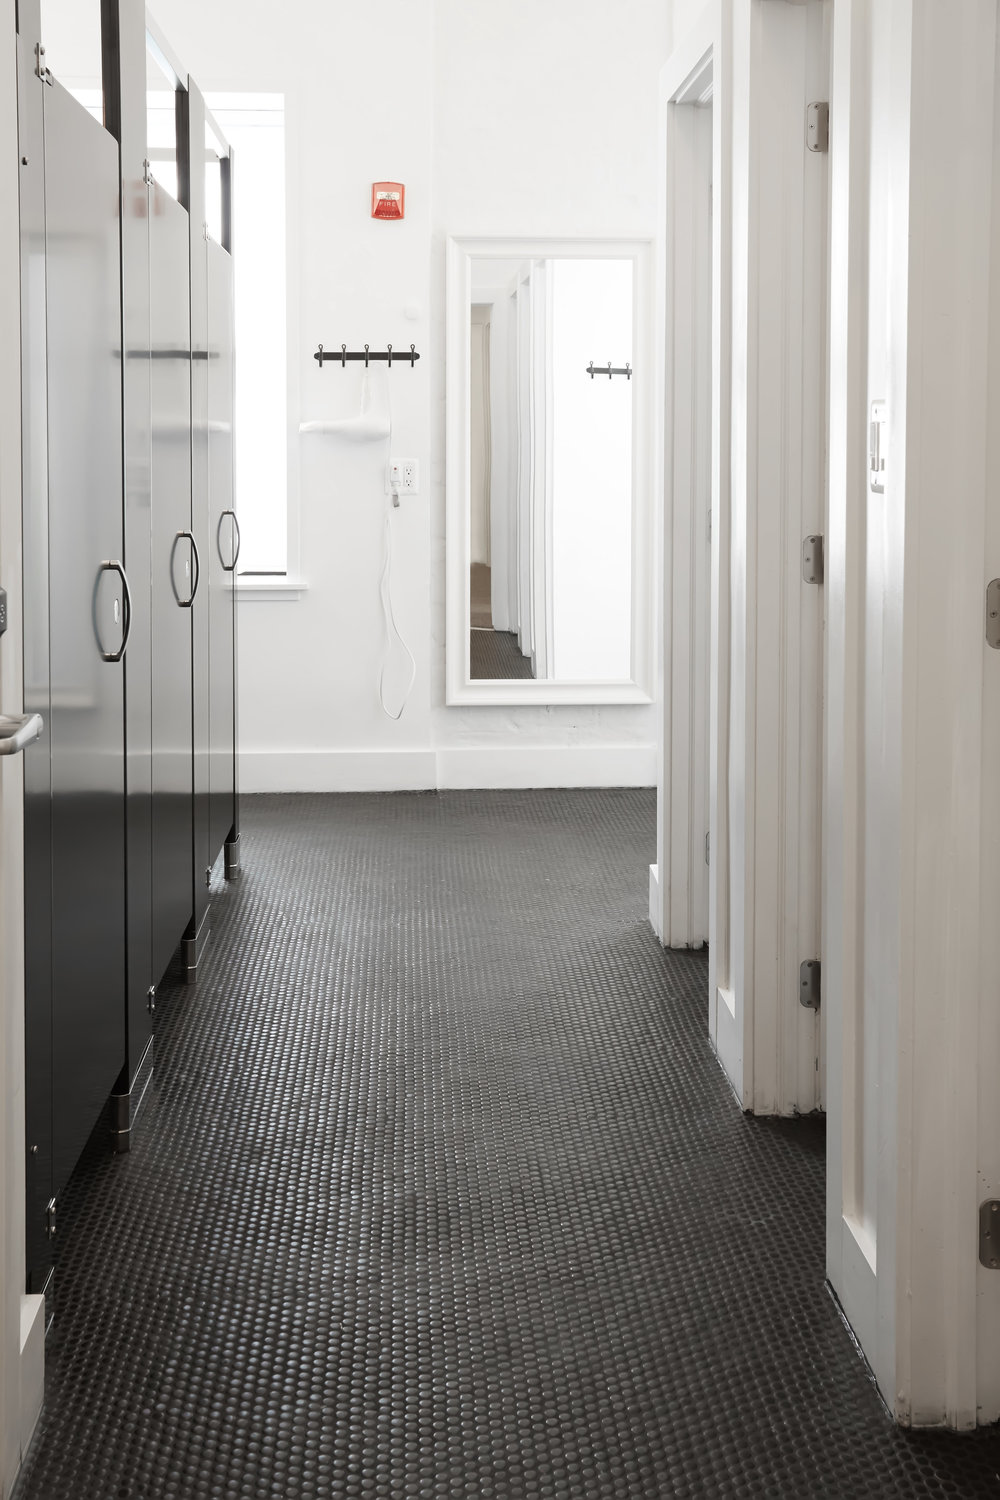 Example guest bathroom shower stalls and clean black penny tile floor